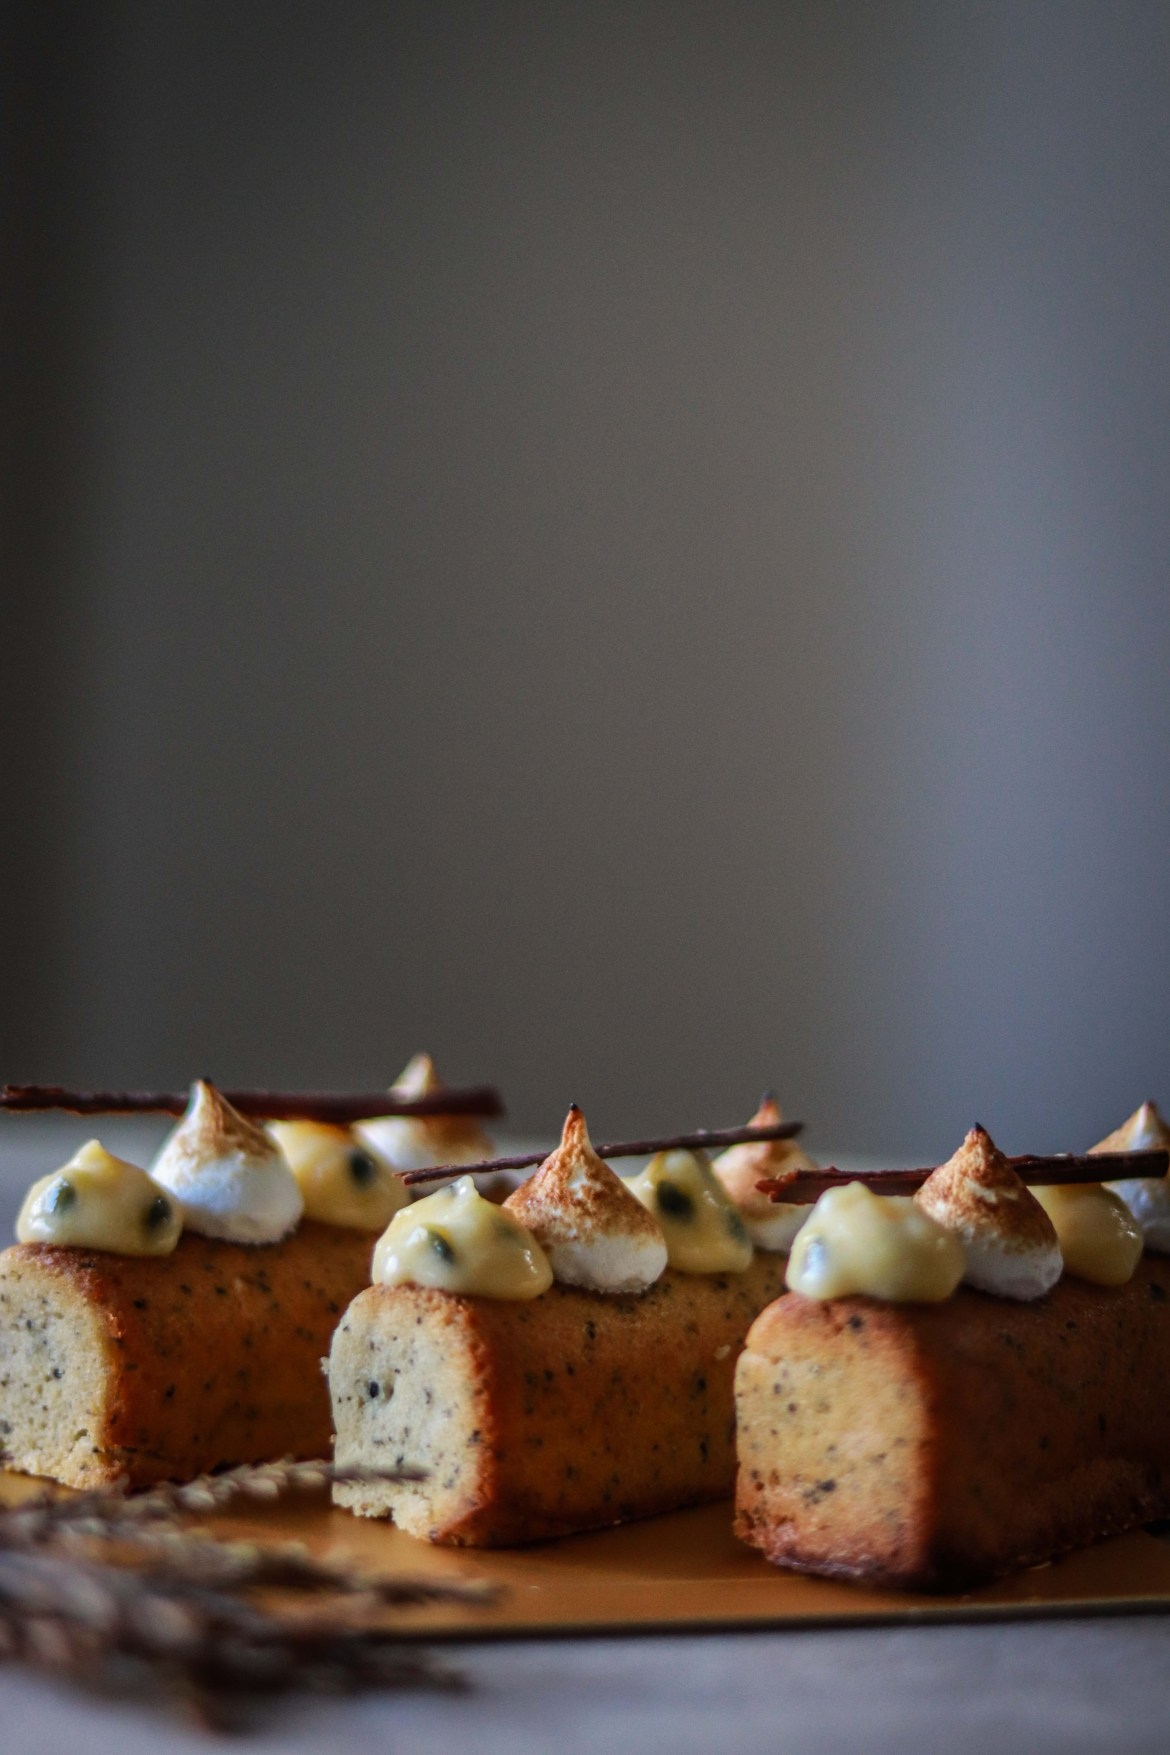 Earl_Grey_Cake_with_Passionfruitcurd_and_Toasted_Meringue2